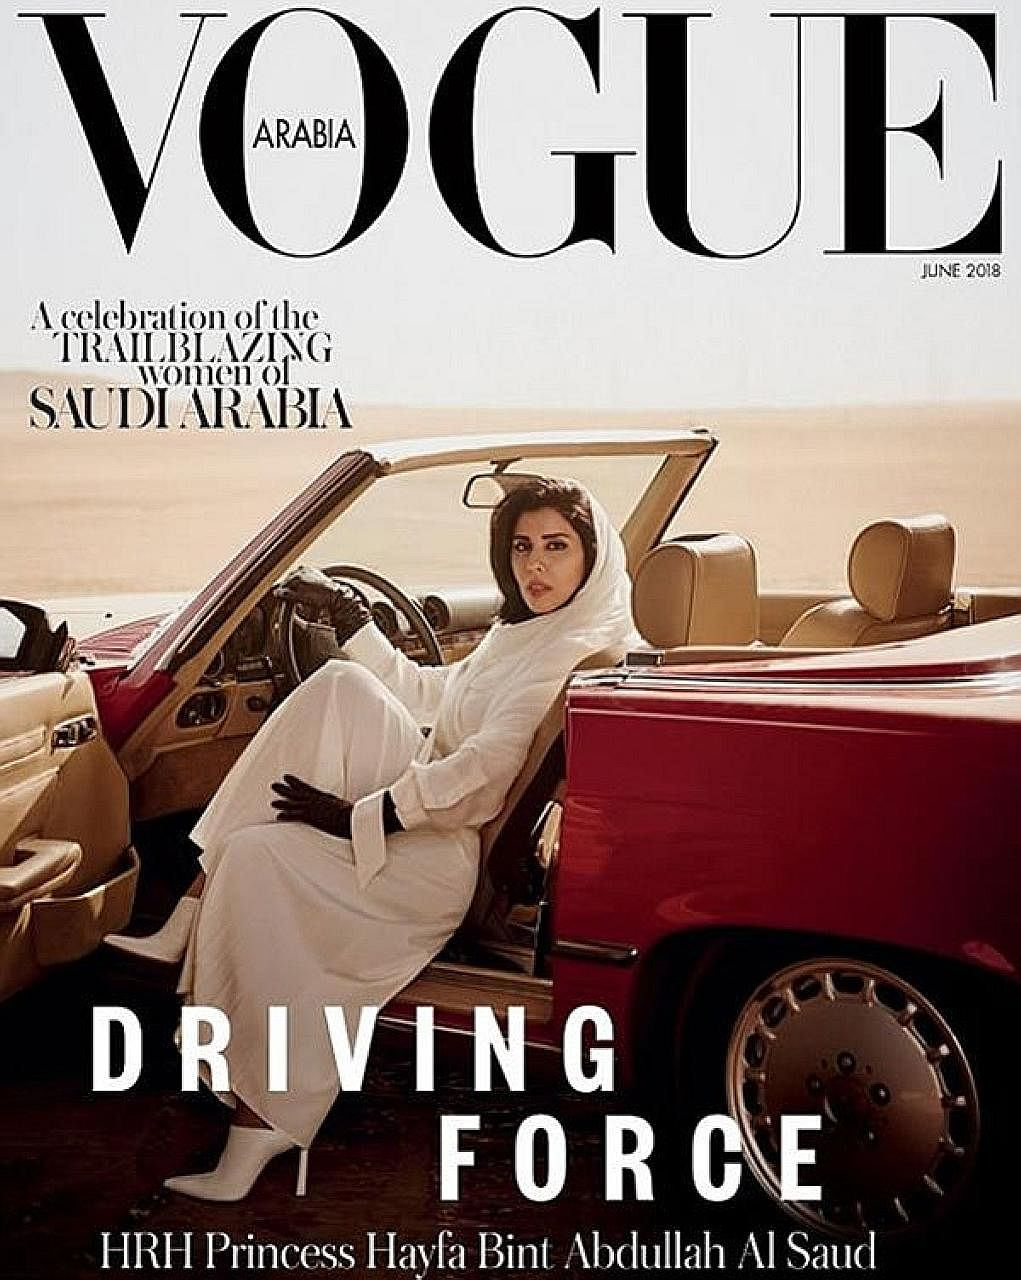 Saudi Princess Hayfa bint Abdullah al-Saud was pictured behind the wheel of a red convertible on Vogue Arabia's cover.